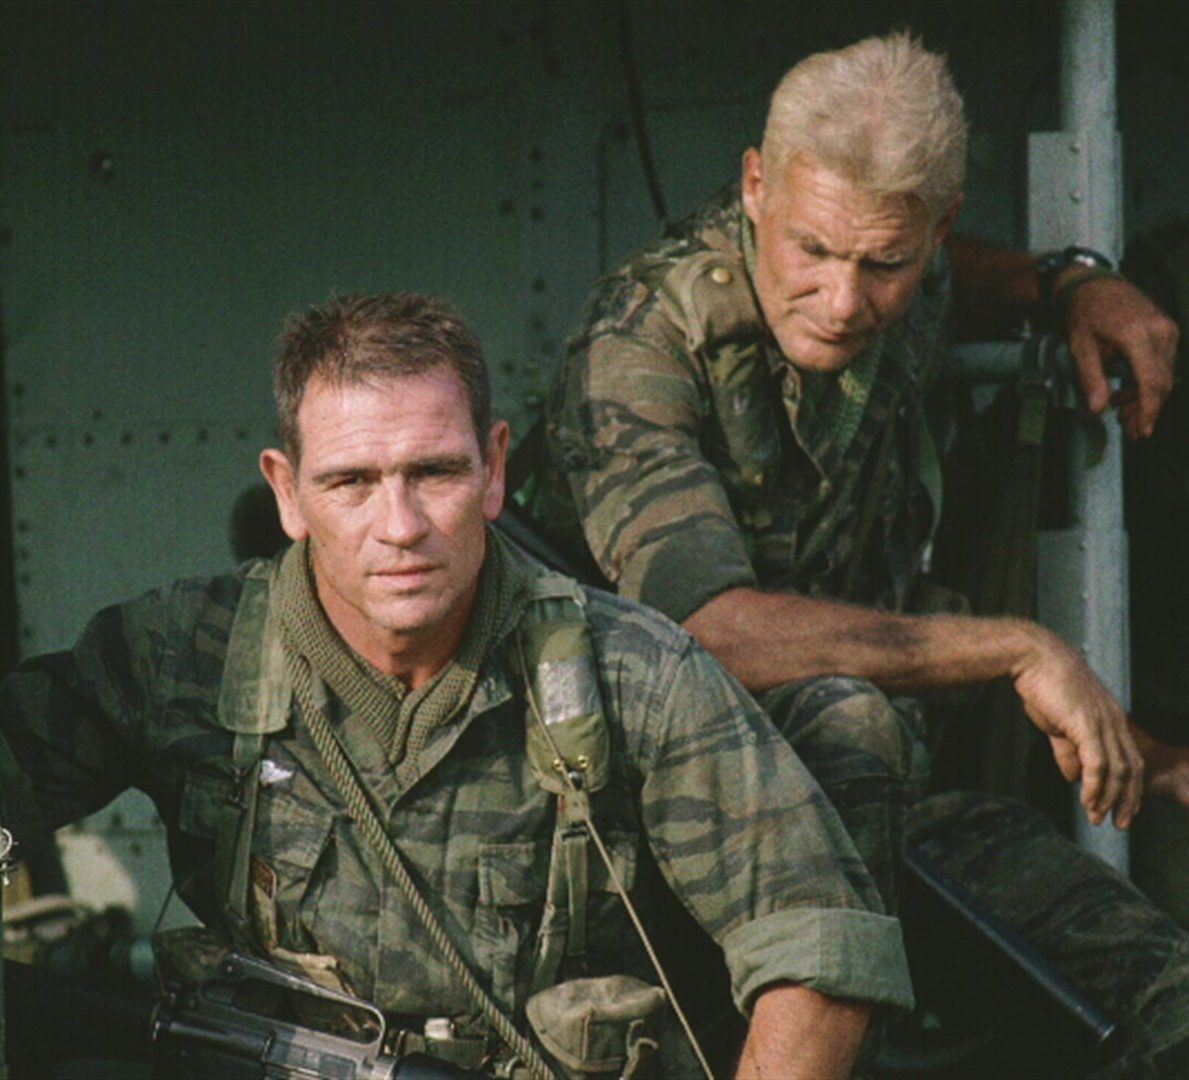 1 42 e1606912187799 30 Things You Probably Didn't Know About Platoon